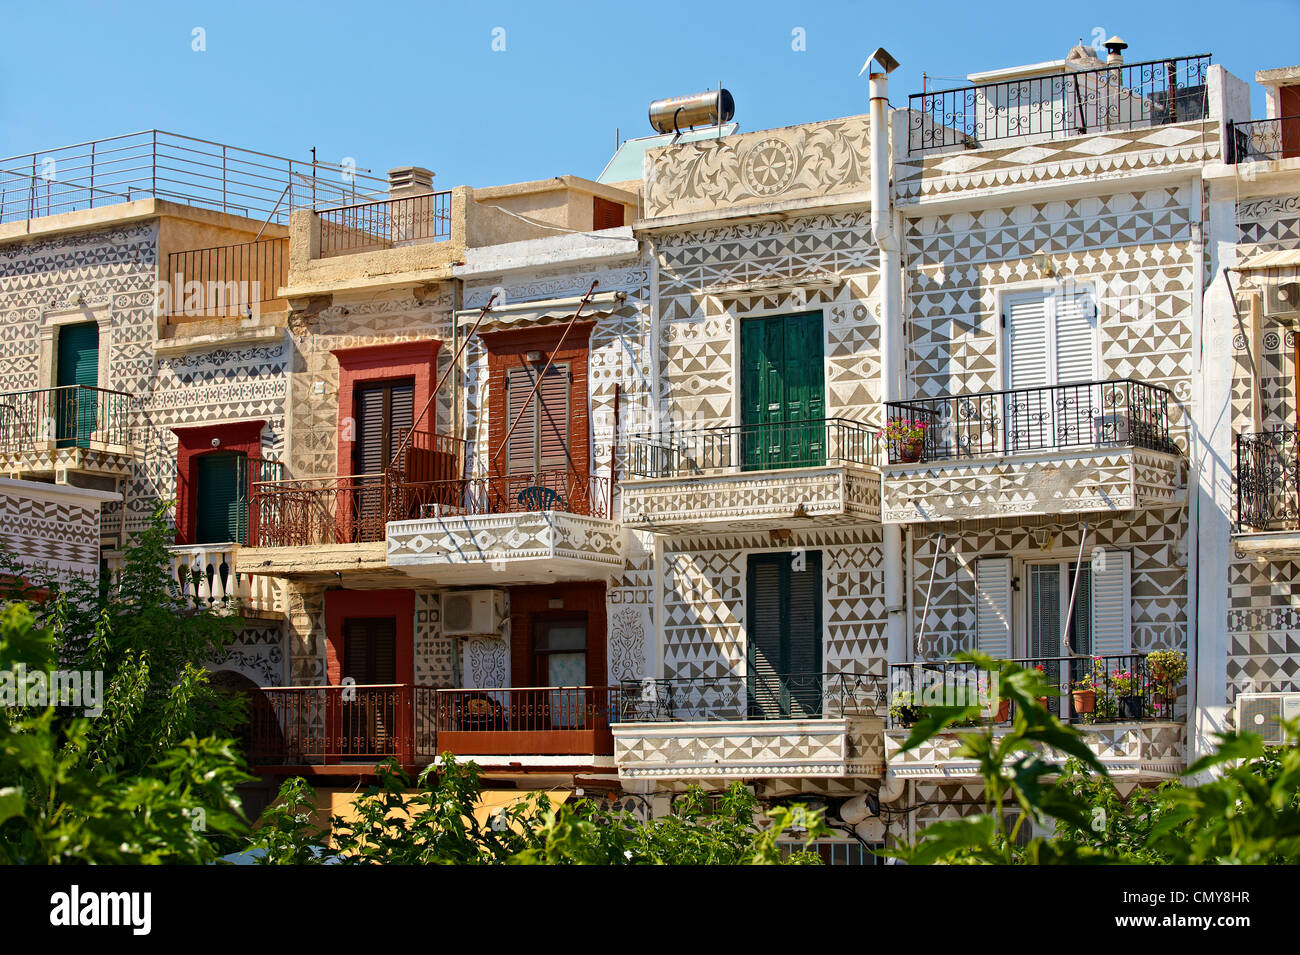 Xysta decorations on the houses of Pygri, Mastic Village of southern Chios Island, Greece - Stock Image